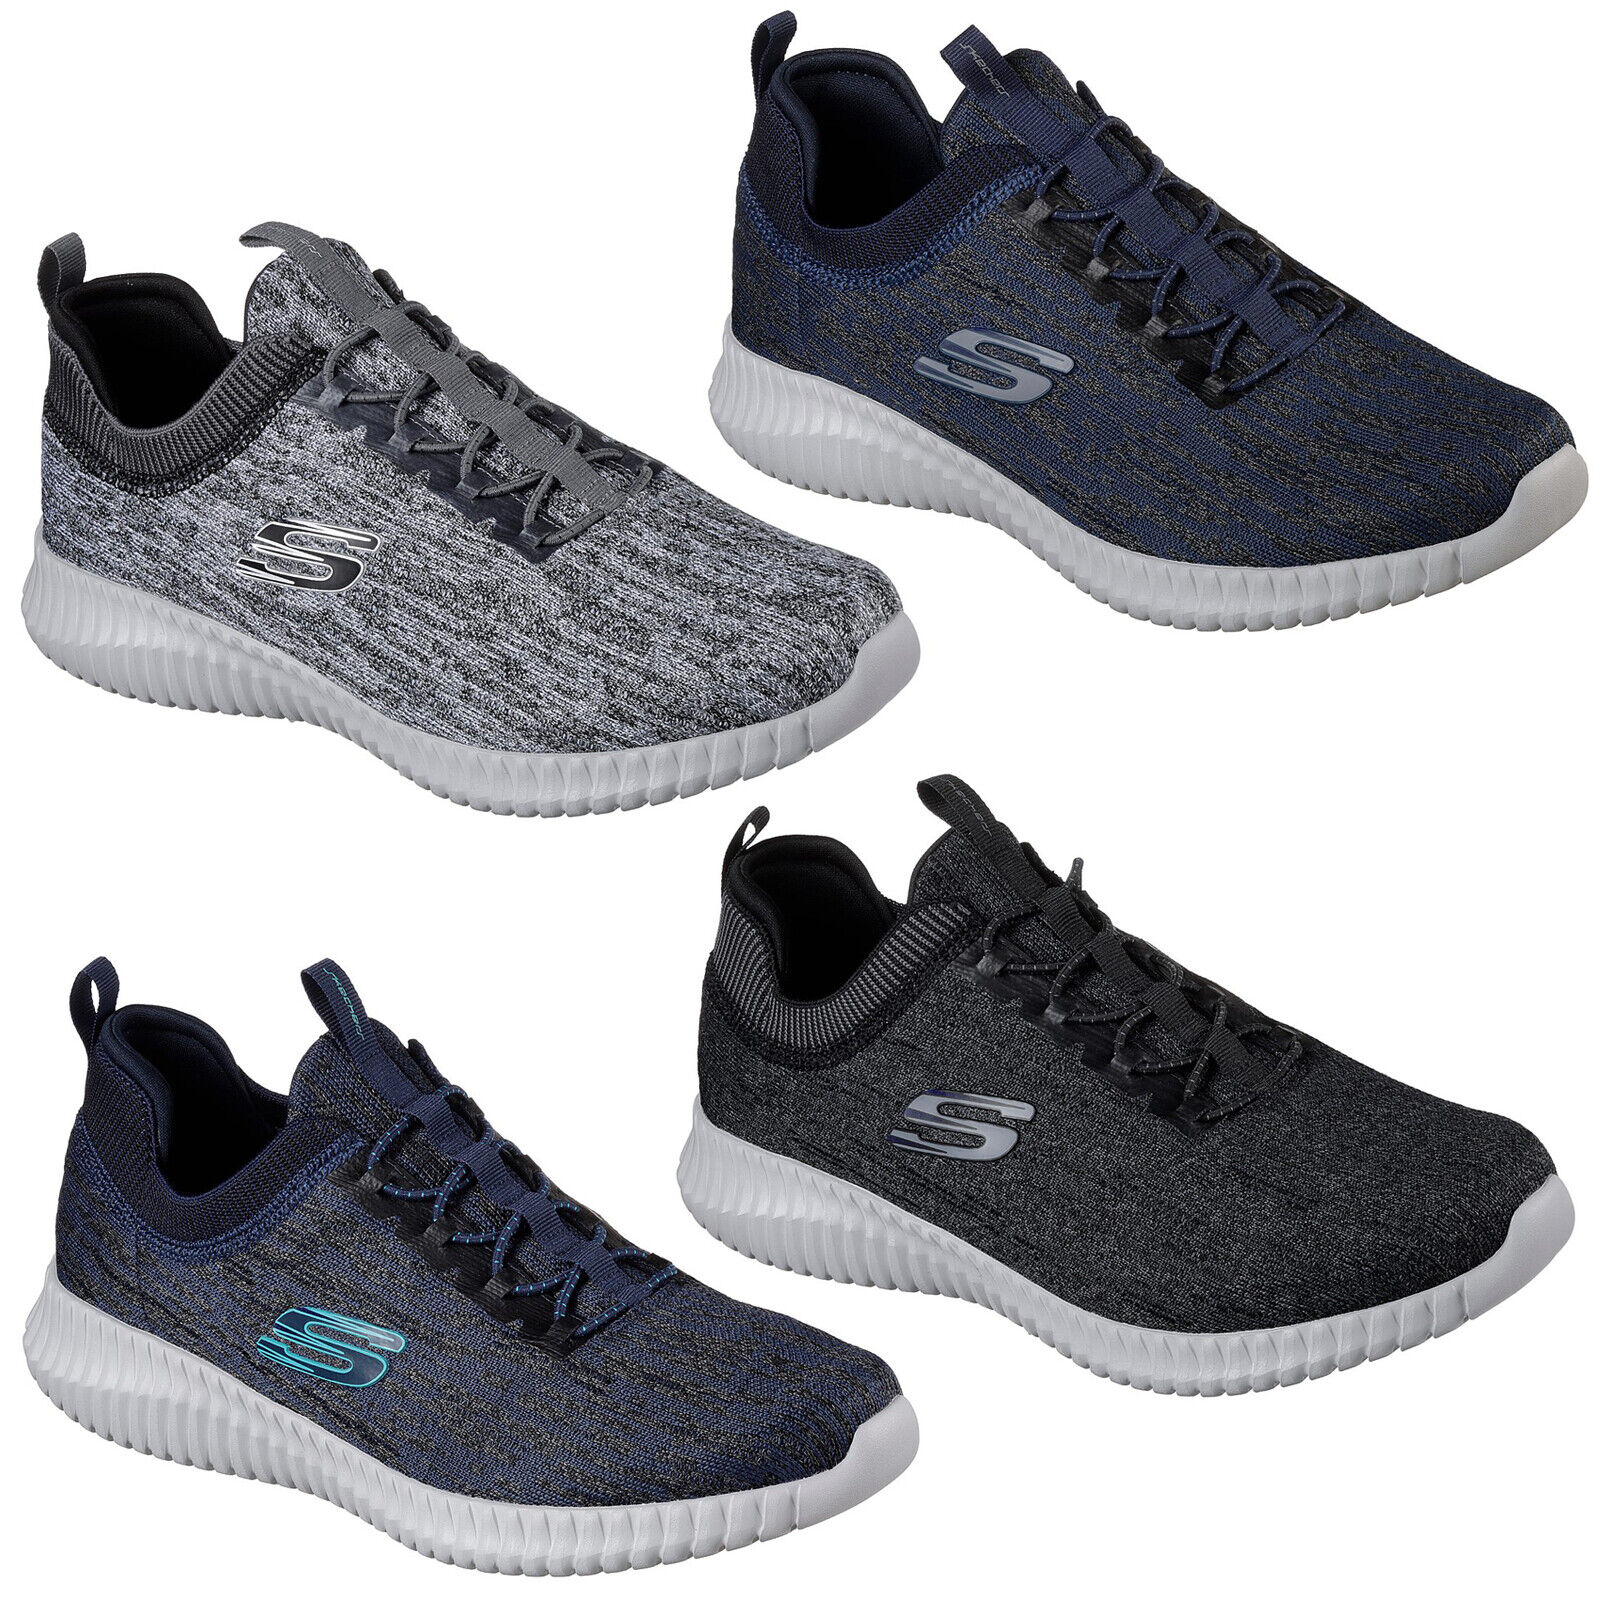 Skechers  Elite Flex Hartnell Trainers Mens Memory Foam Sports Fashion shoes  cheap in high quality